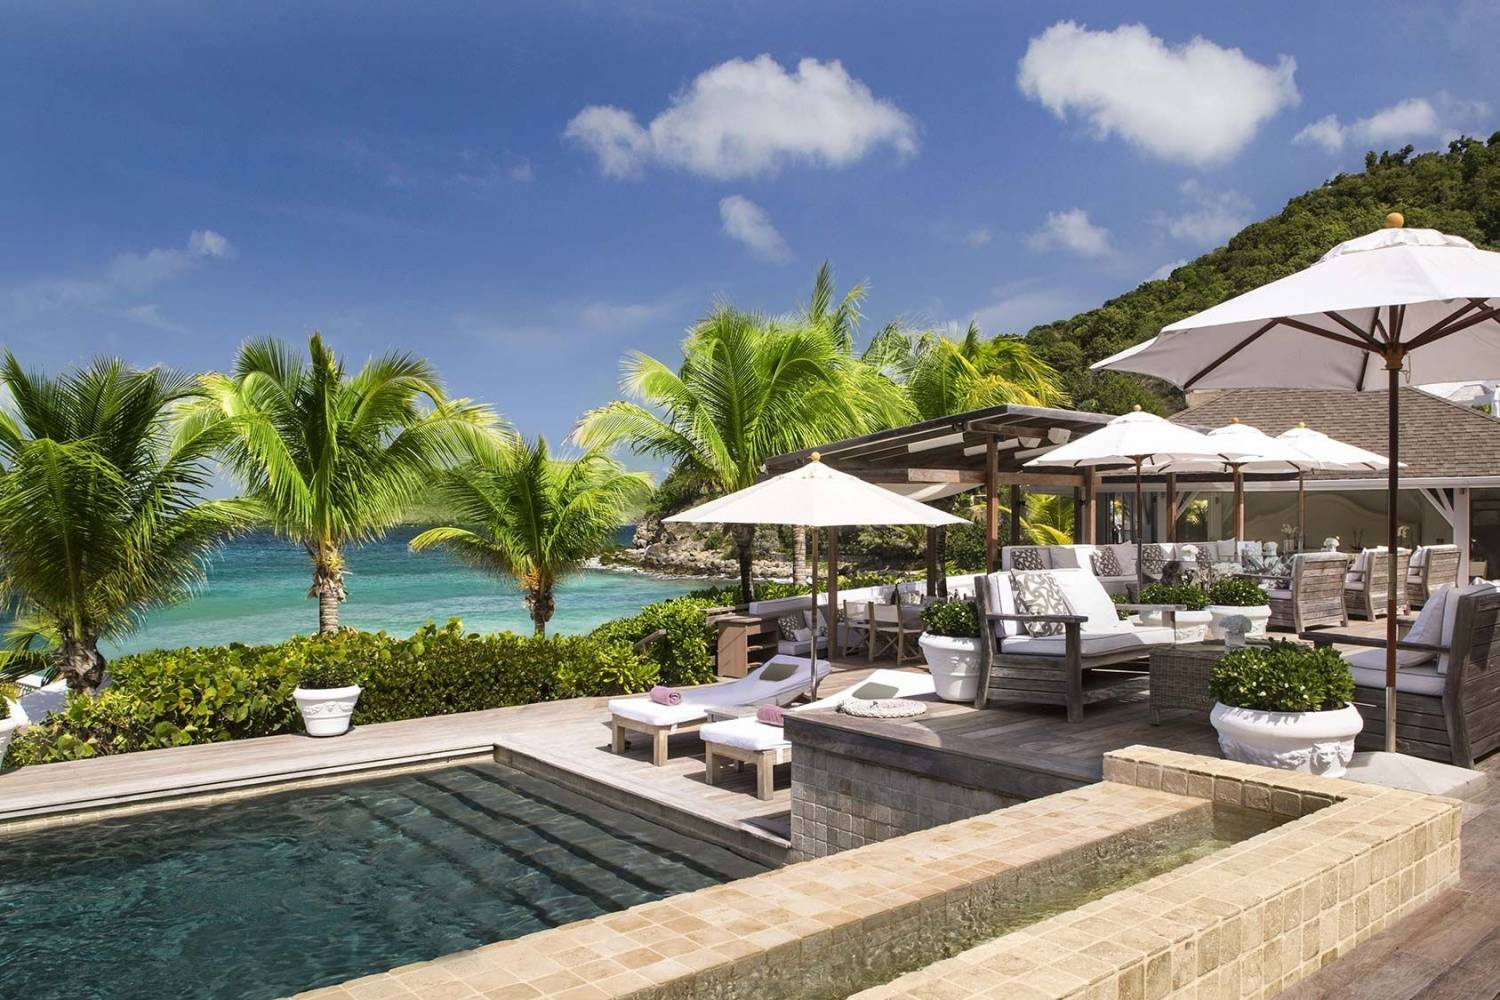 Our Private Chefs in Deve, St. Barts provide any dish, at any time, for all occasions, header